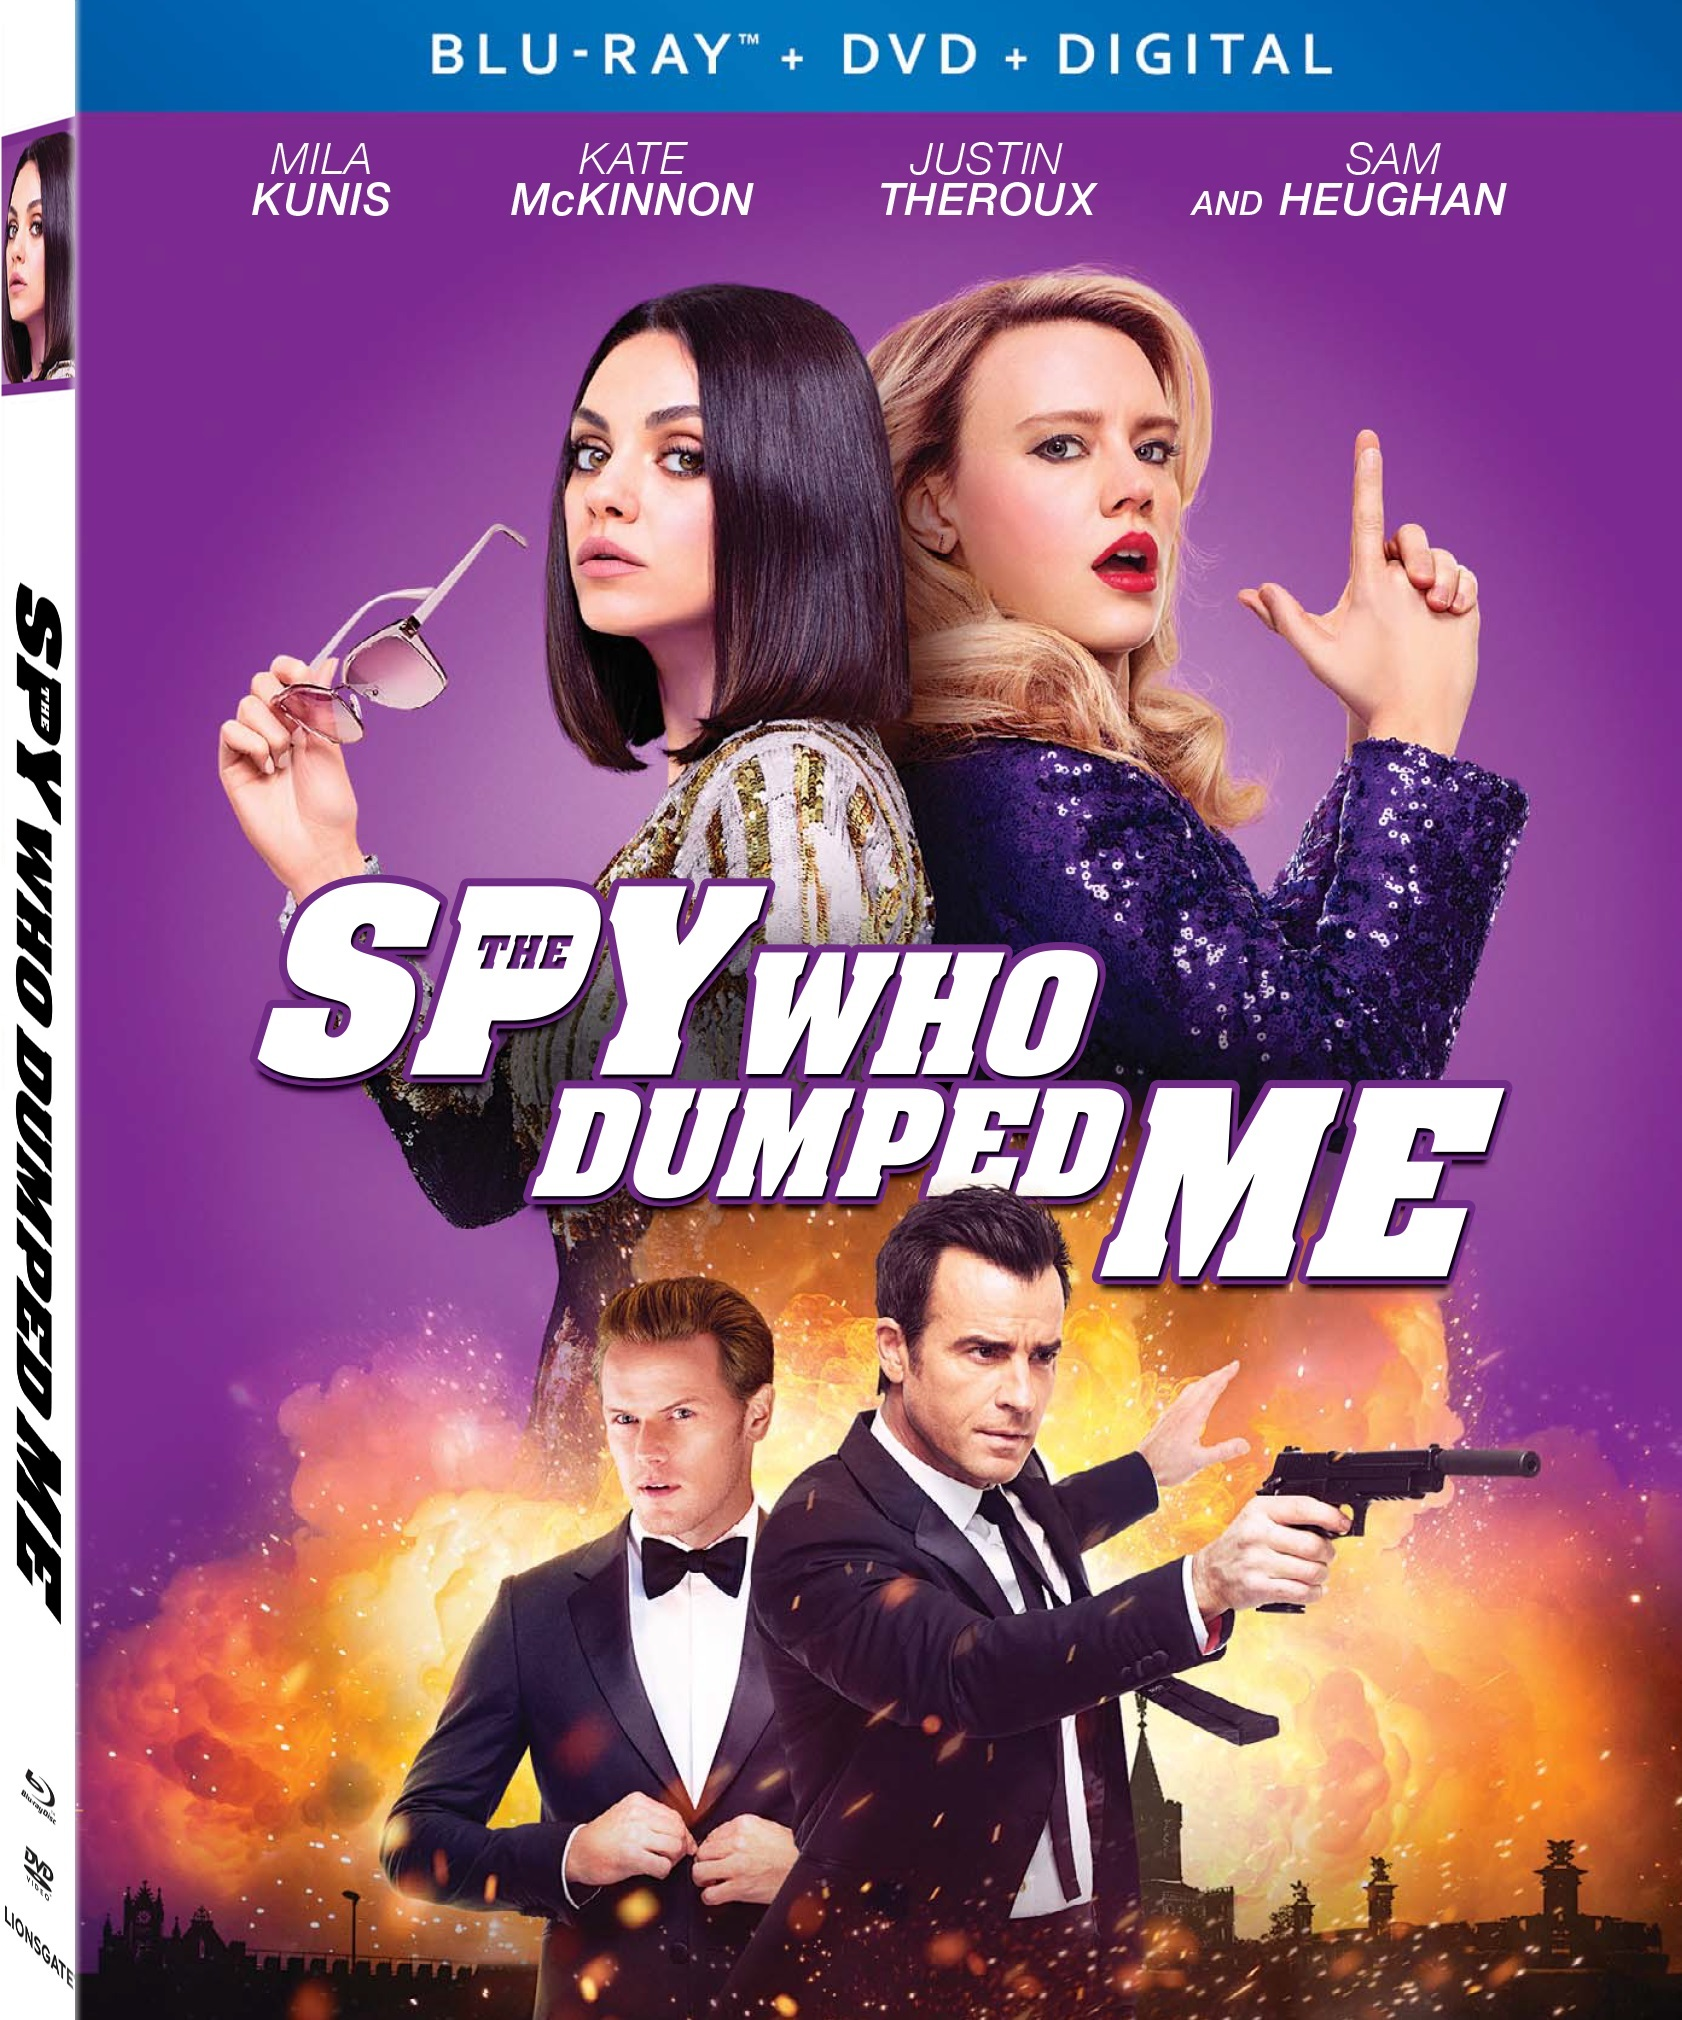 The Spy Who Dumped Me poster image